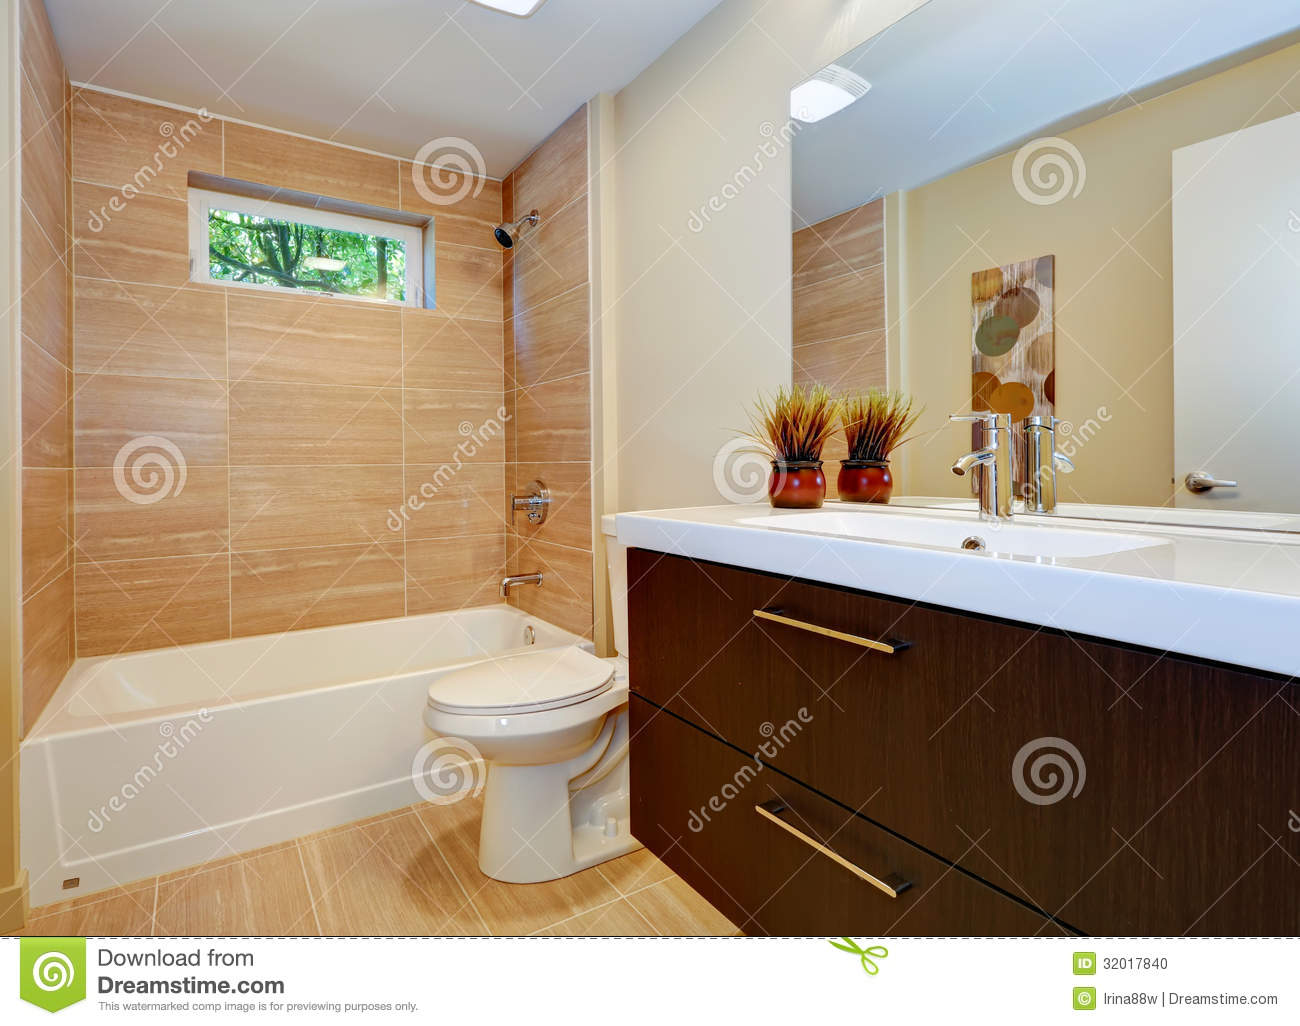 Modern new bathroom design with sink and white tub stock for New home bathroom design